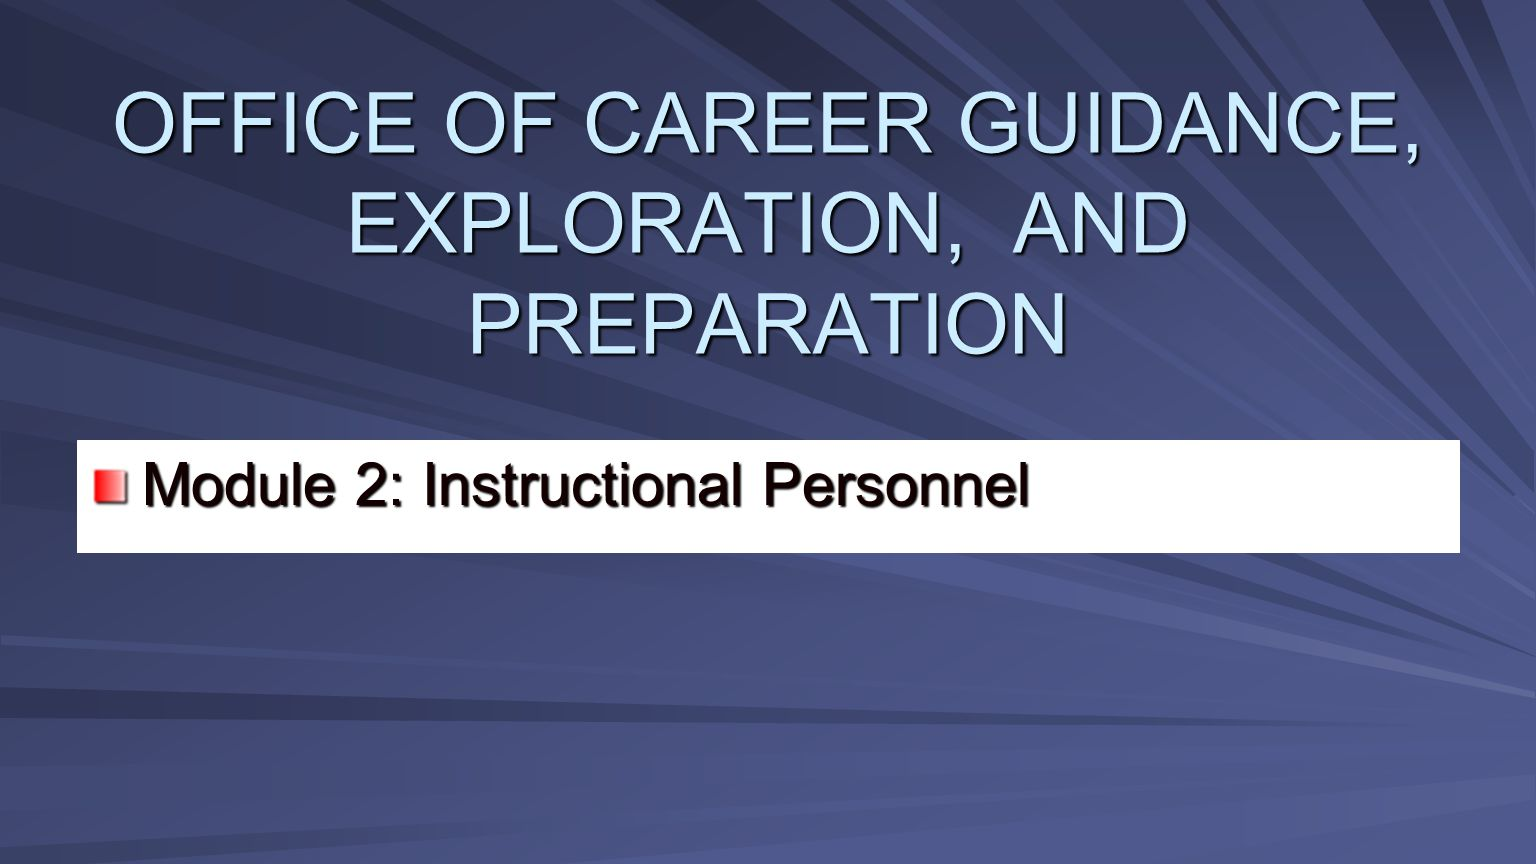 OFFICE OF CAREER GUIDANCE, EXPLORATION, AND PREPARATION